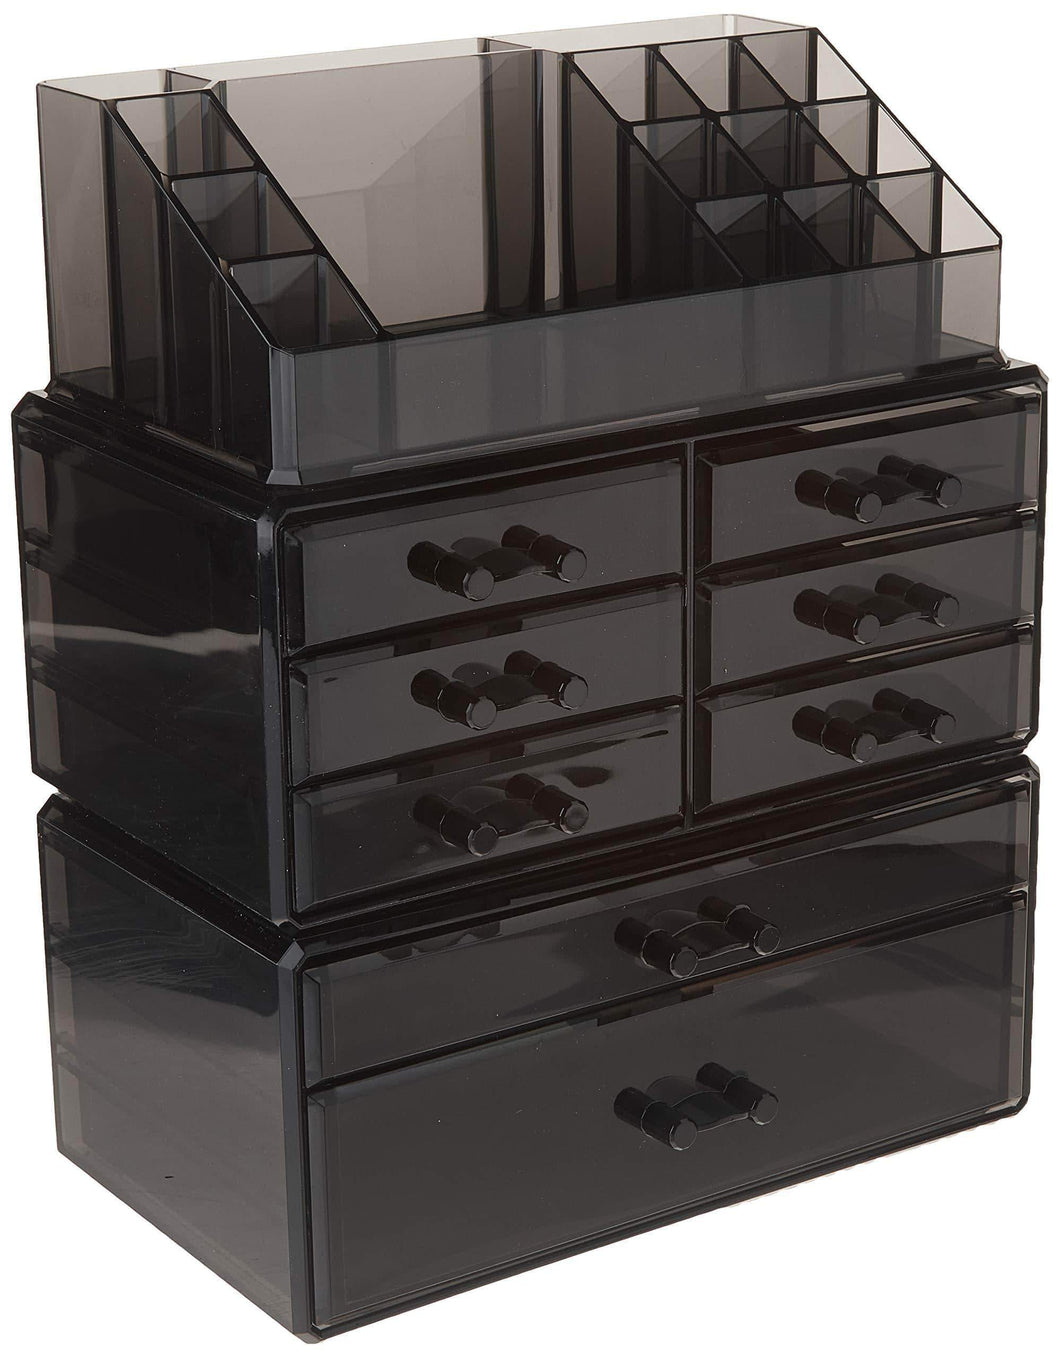 Related songmics makeup organizer 8 drawers cosmetic storage 3 pieces set jewelry display case with 16 top compartments black ujmu08b